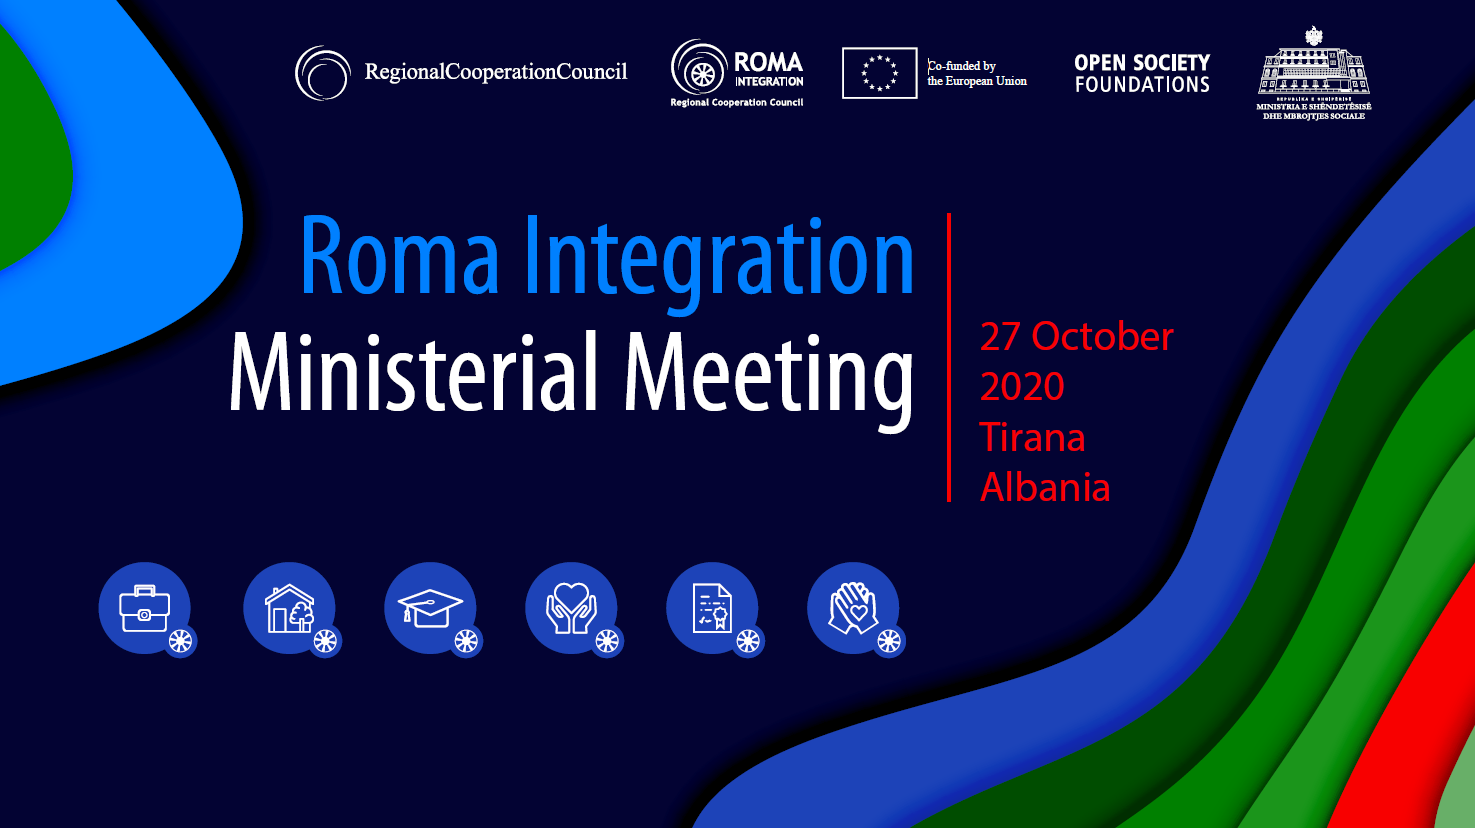 Conclusions of the Ministerial meeting on Roma Integration